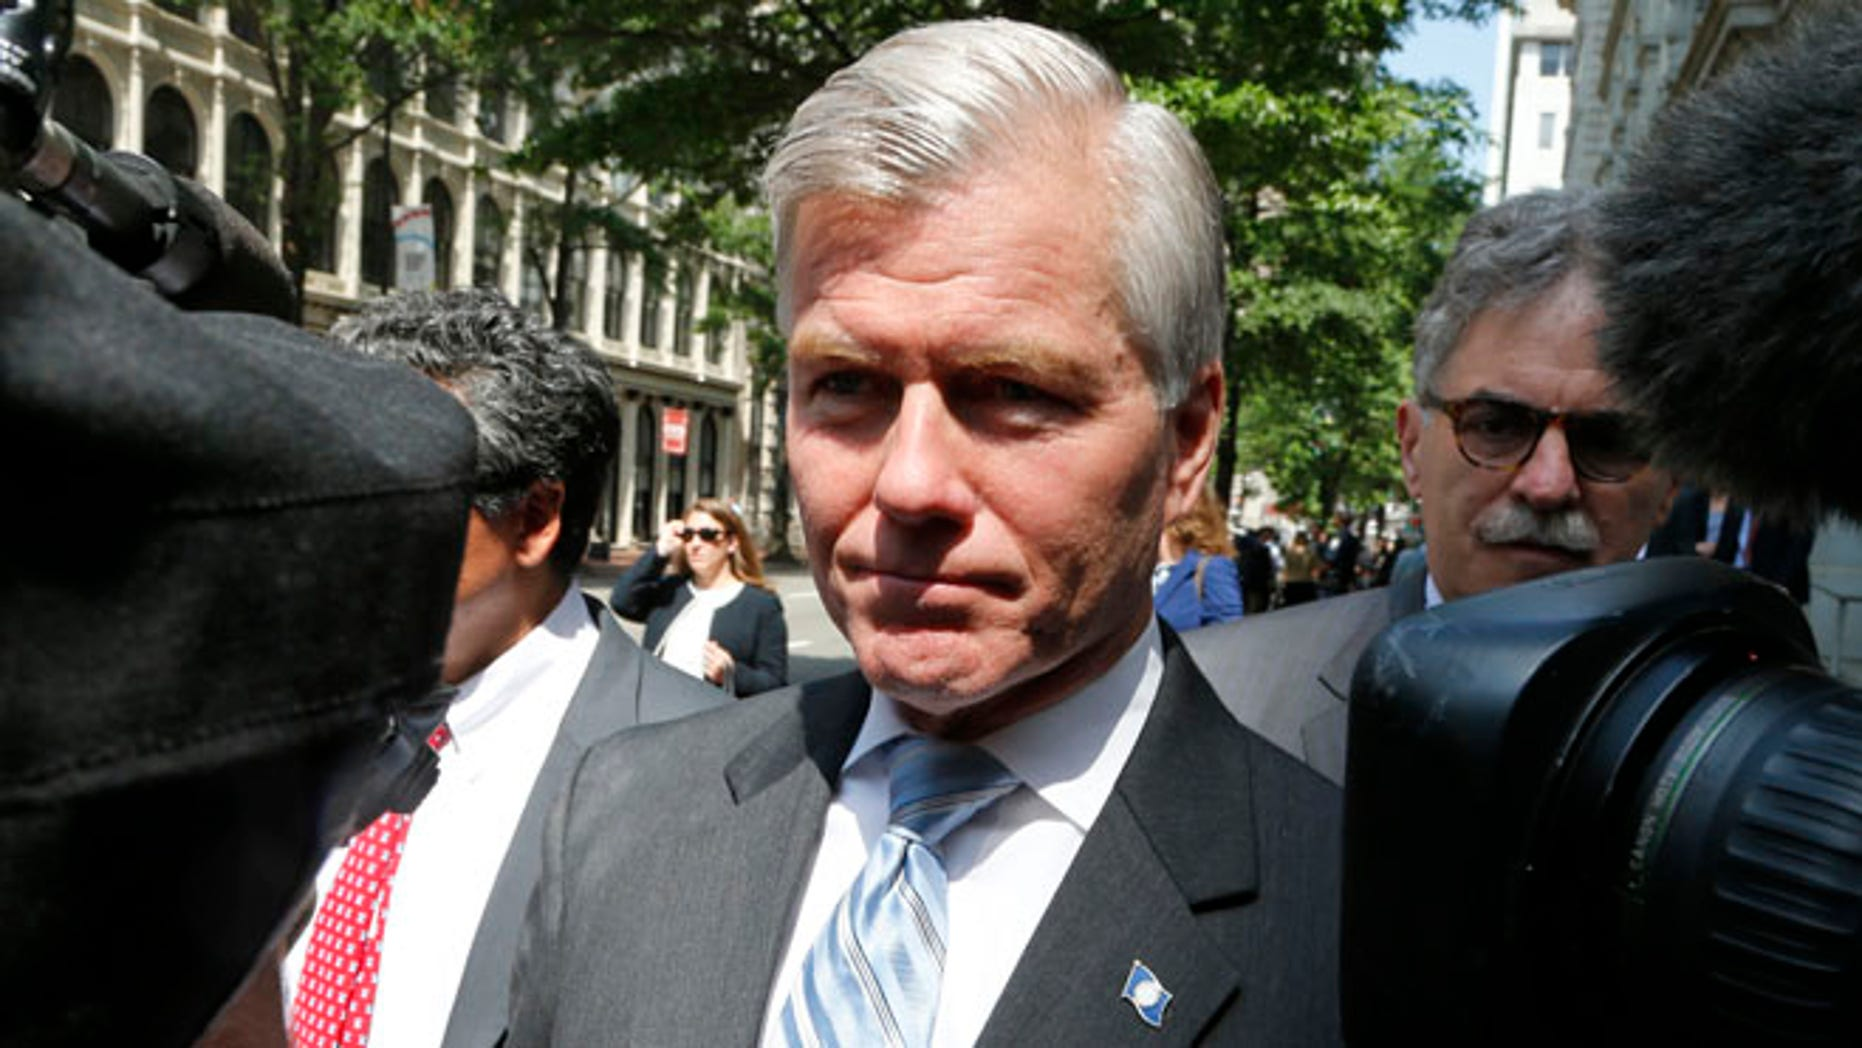 May 12, 2015: Former Virginia Gov. Bob McDonnell navigates a group of cameras as he leaves the 4th U.S. Circuit Court of Appeals after a hearing the appeal of his corruption conviction in Richmond, Va. (AP)